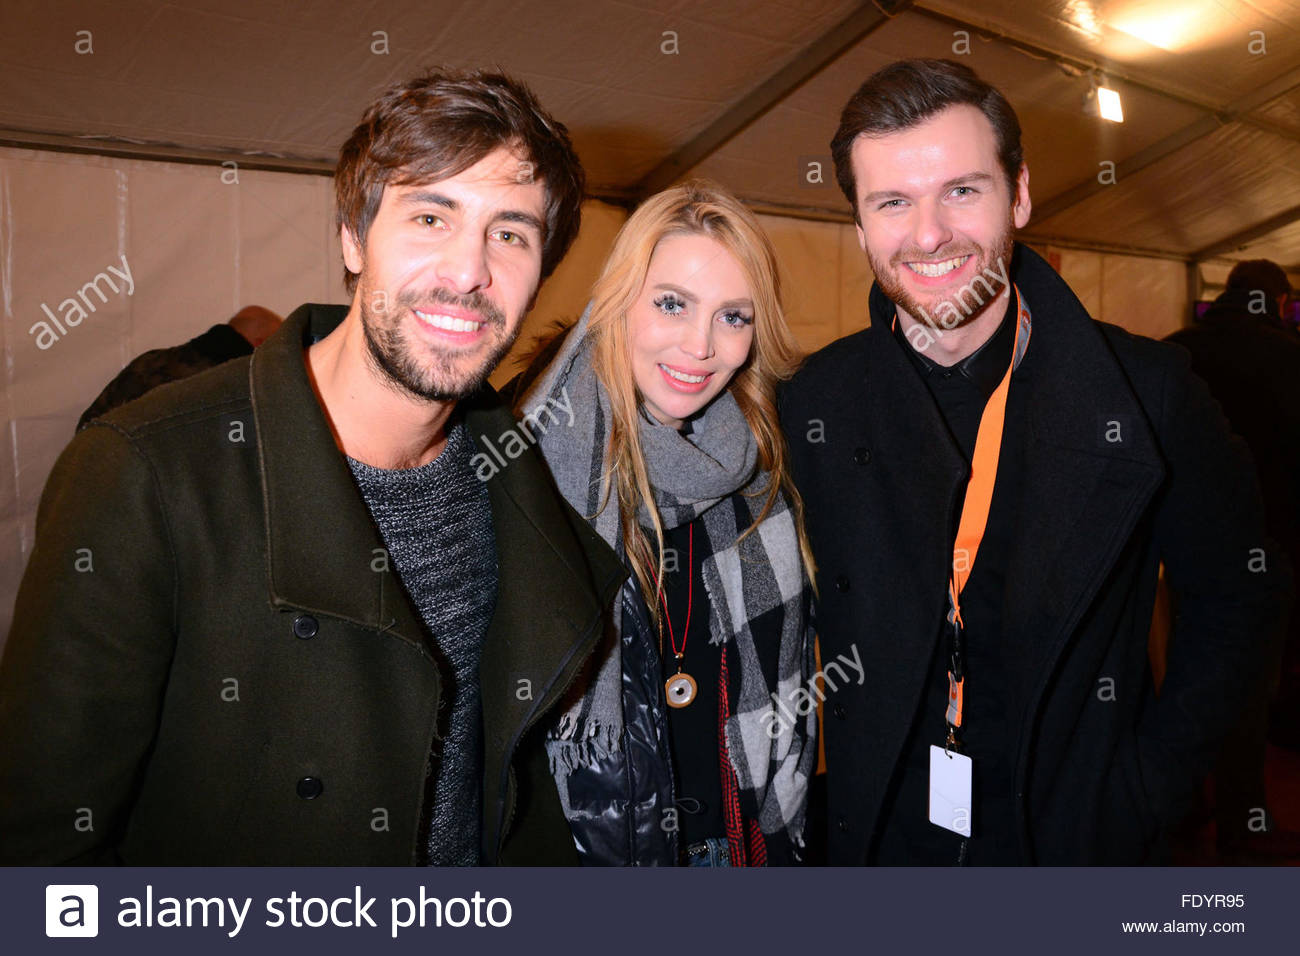 silvester am brandenburger tor mit max giesinger alexa feser daniel grunenberg. Black Bedroom Furniture Sets. Home Design Ideas